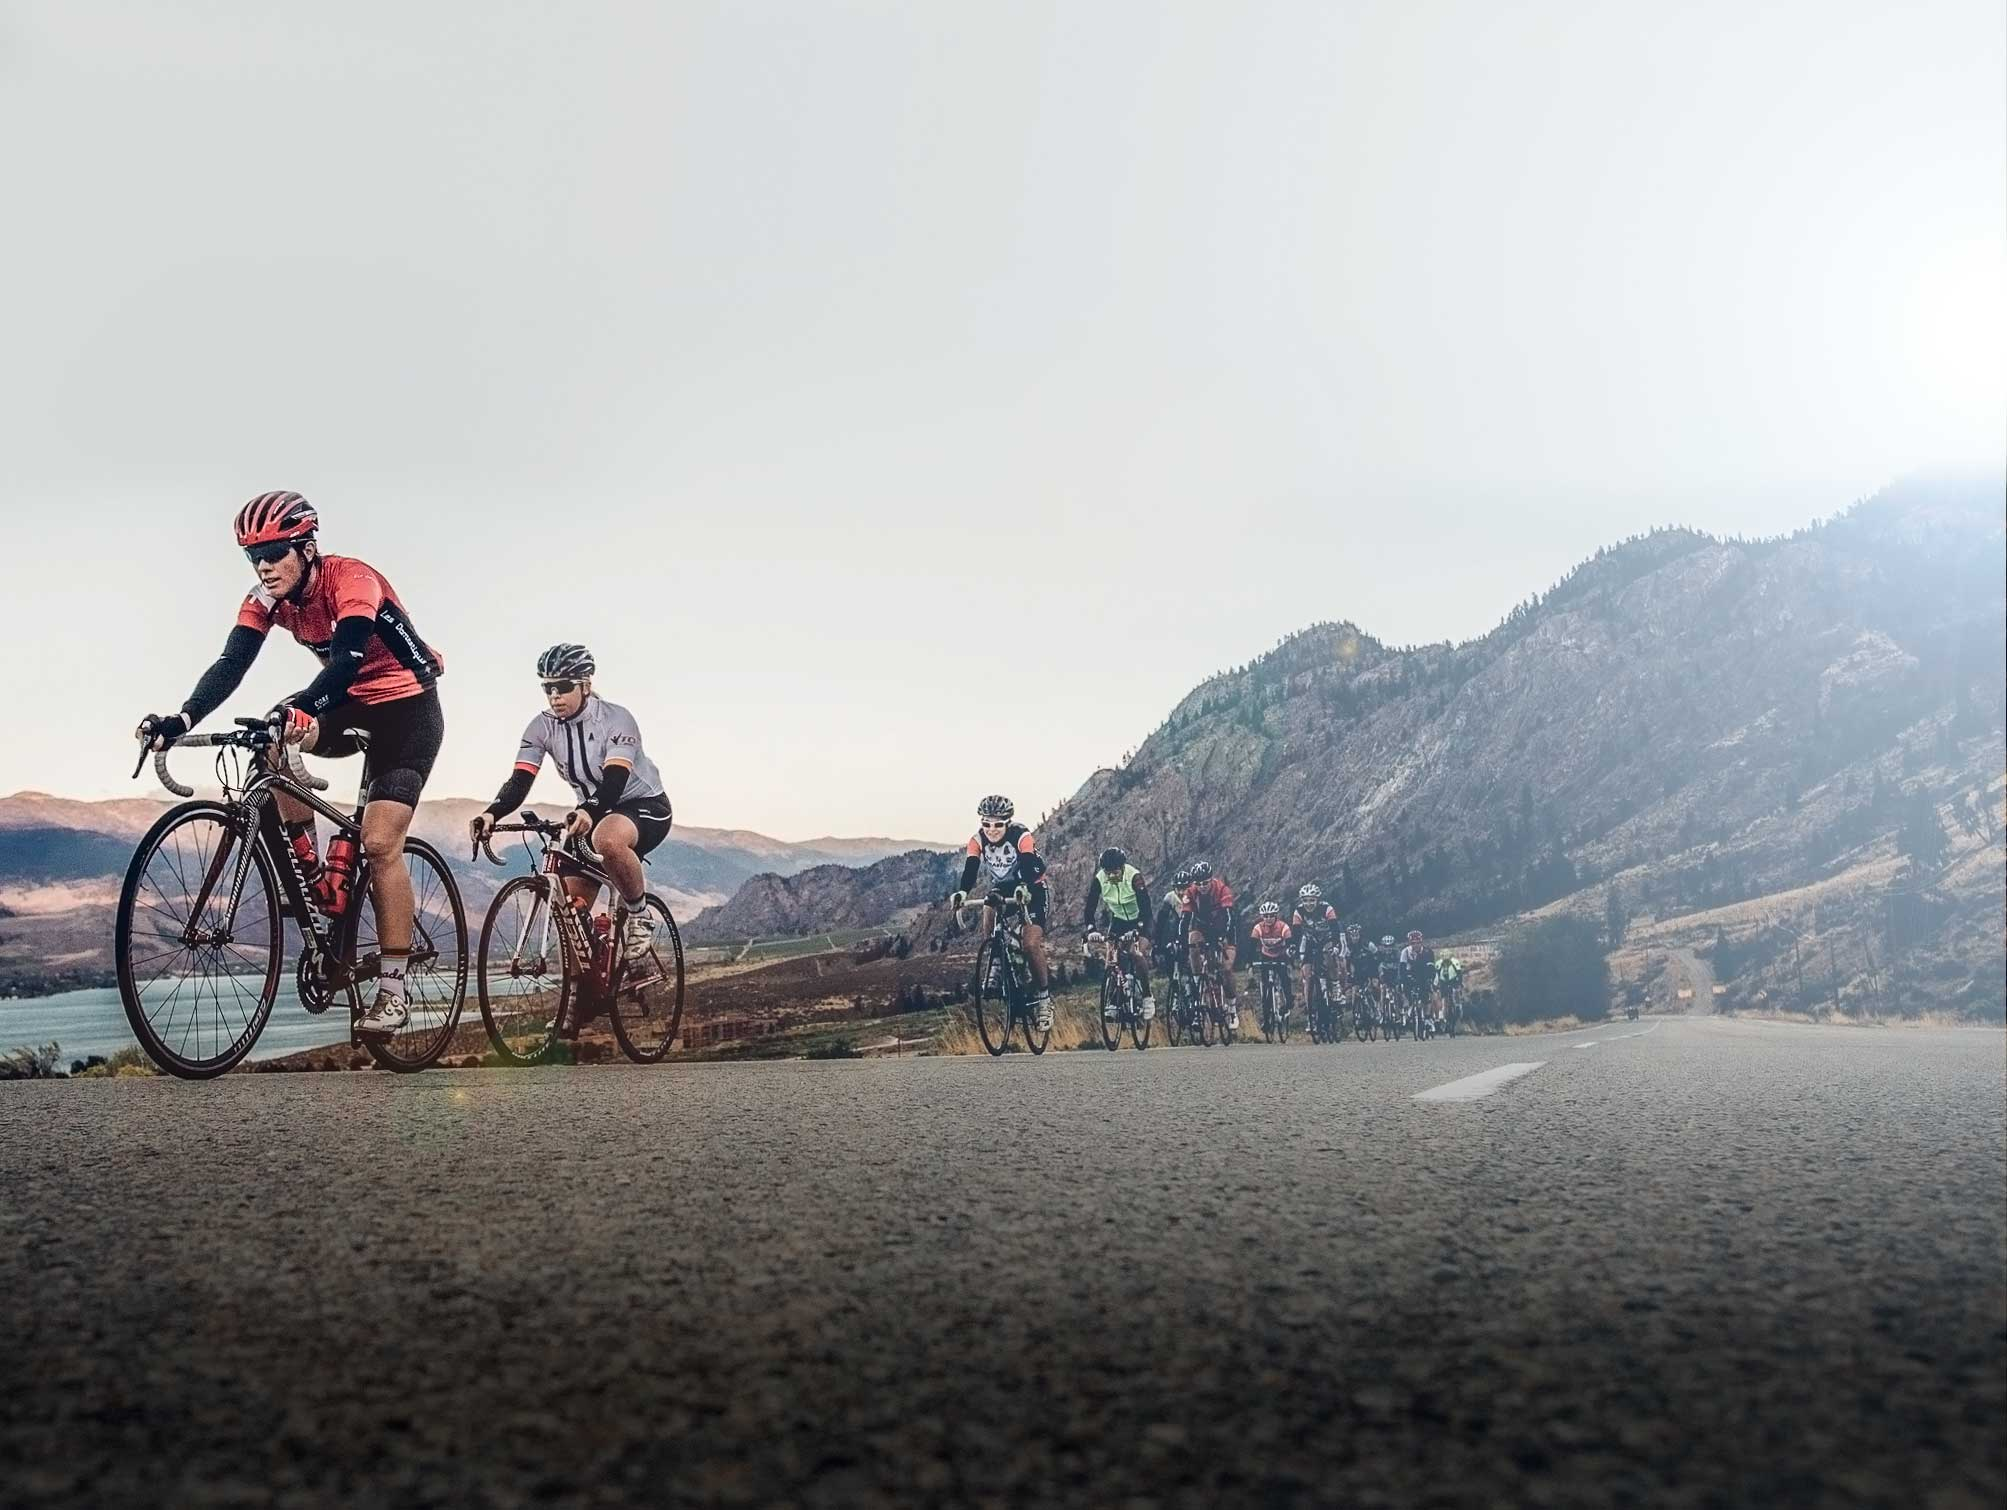 An epic three day stage ride in The Okanagan